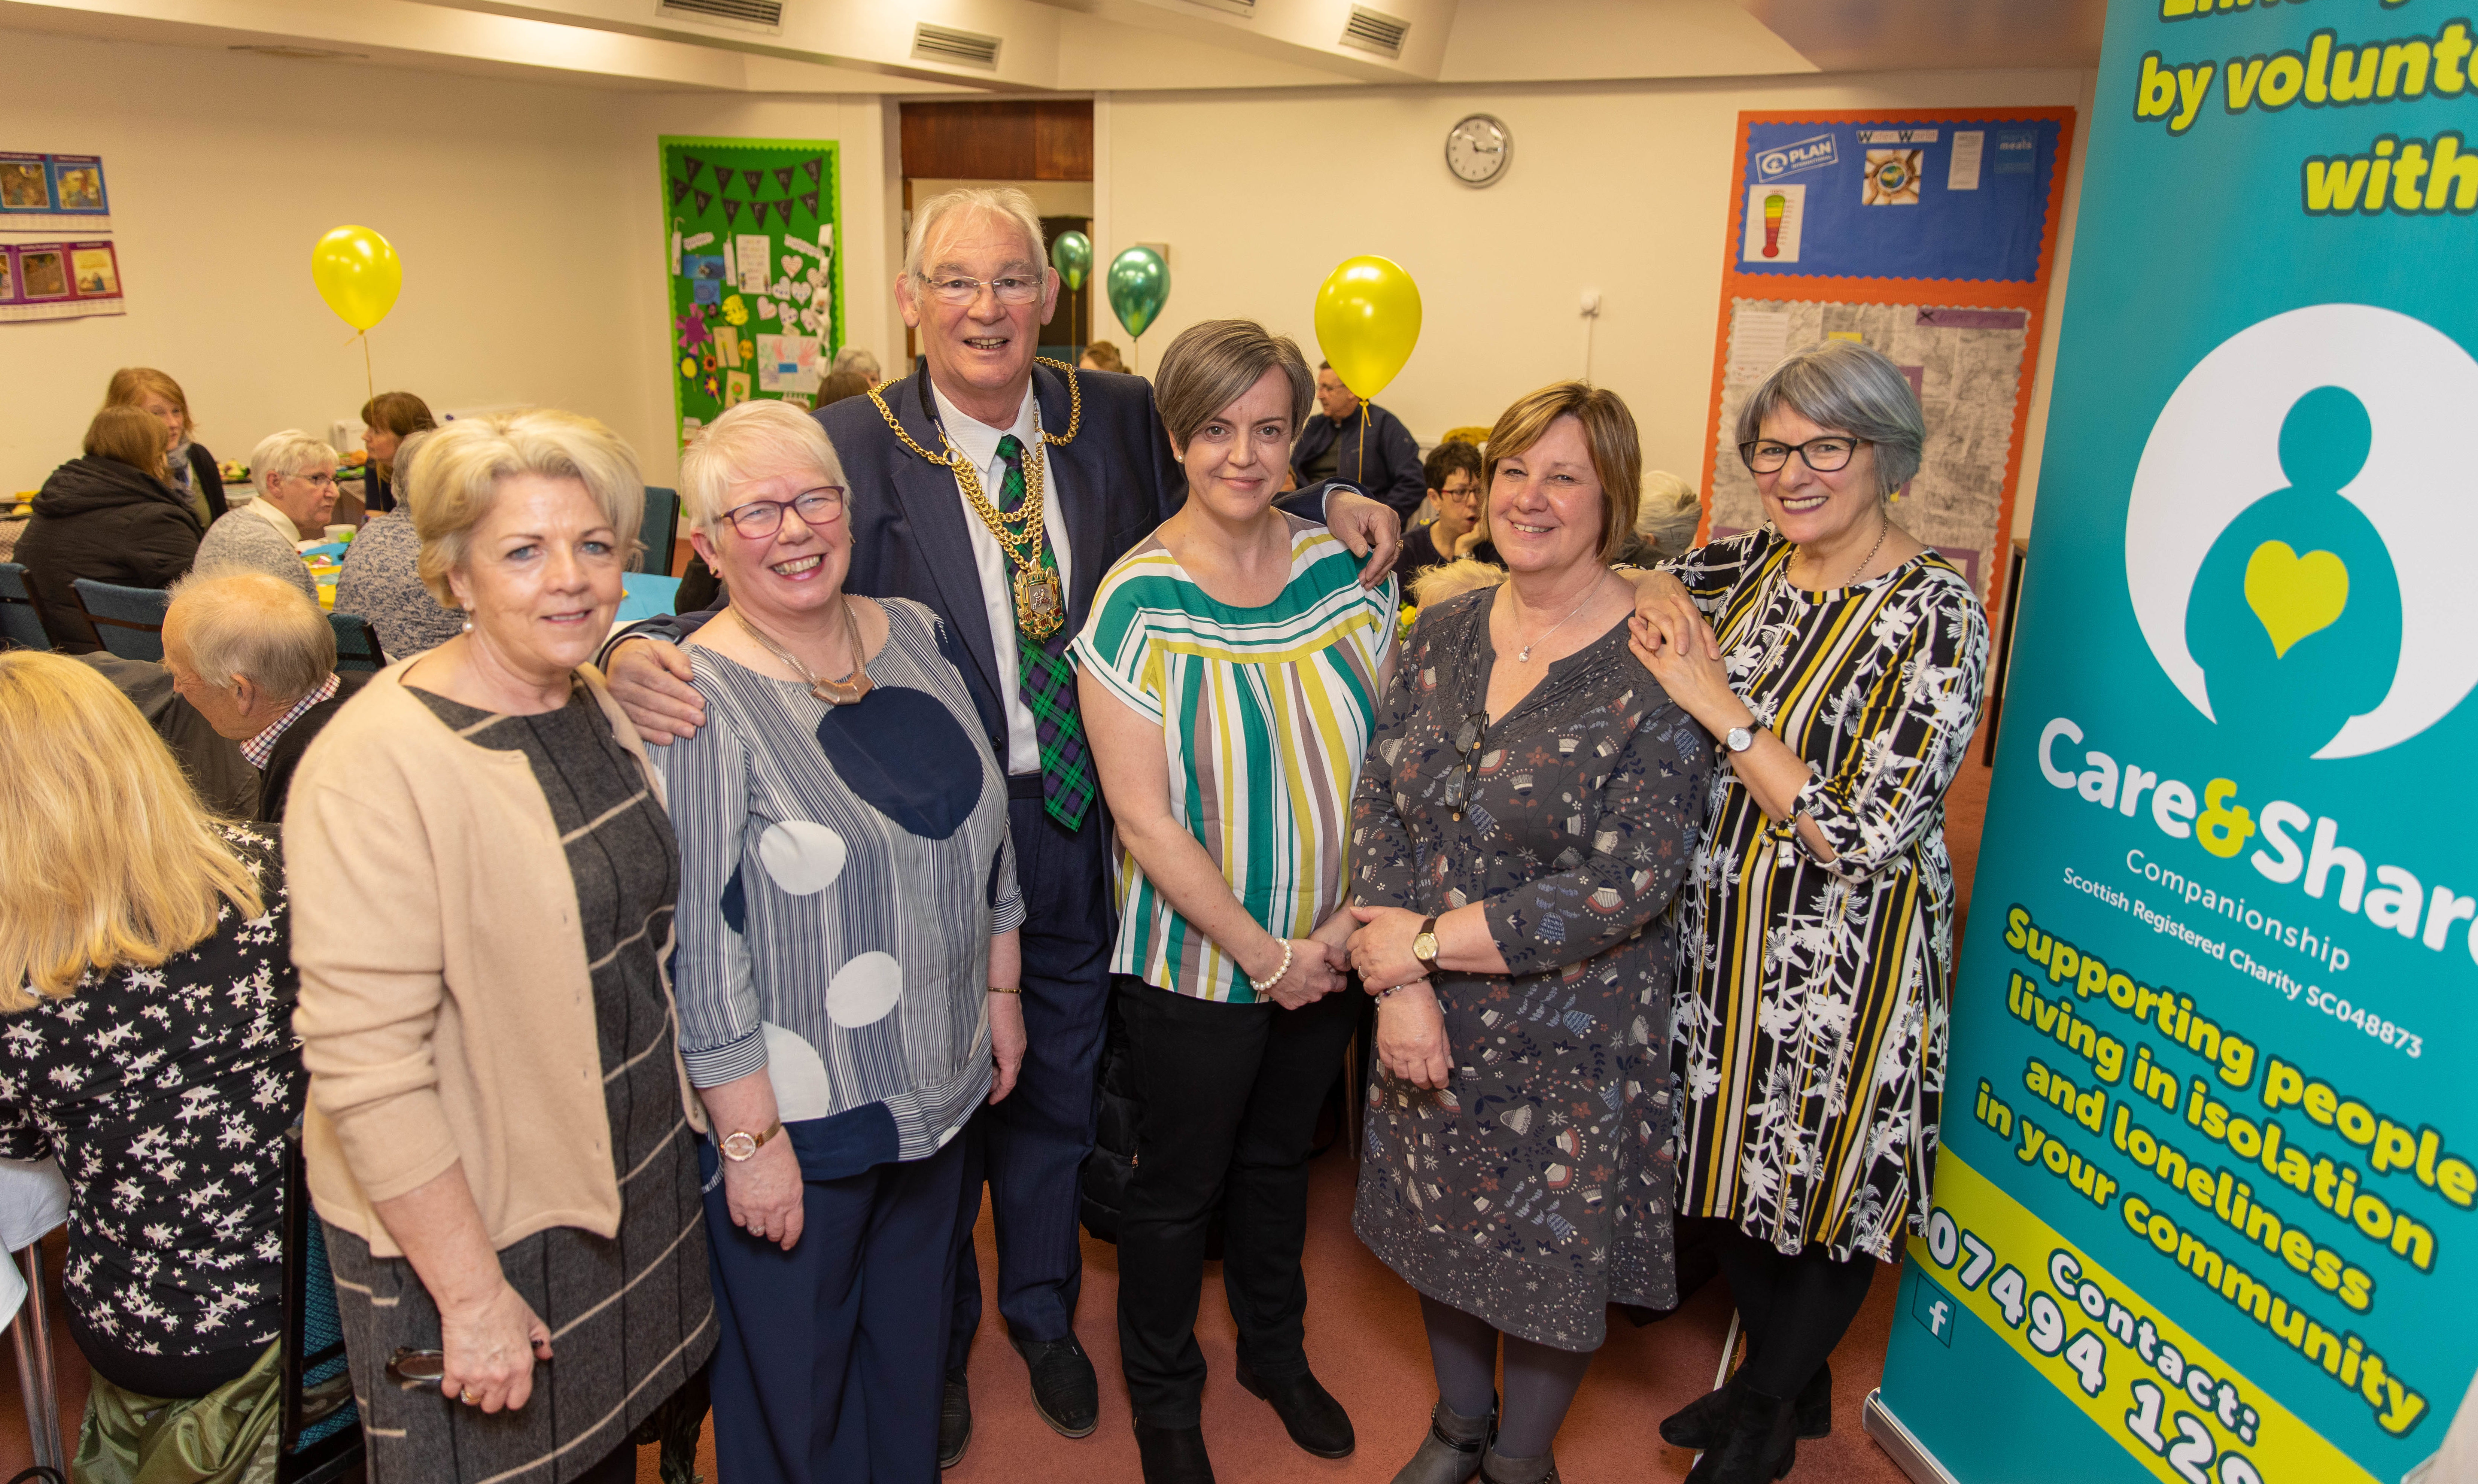 Eileen SPence, Angela Brown, Provost Jim Leishman, Janet Milligan and Teresa Naylor at the Care and Share Companionship launch in Kirkcaldy.